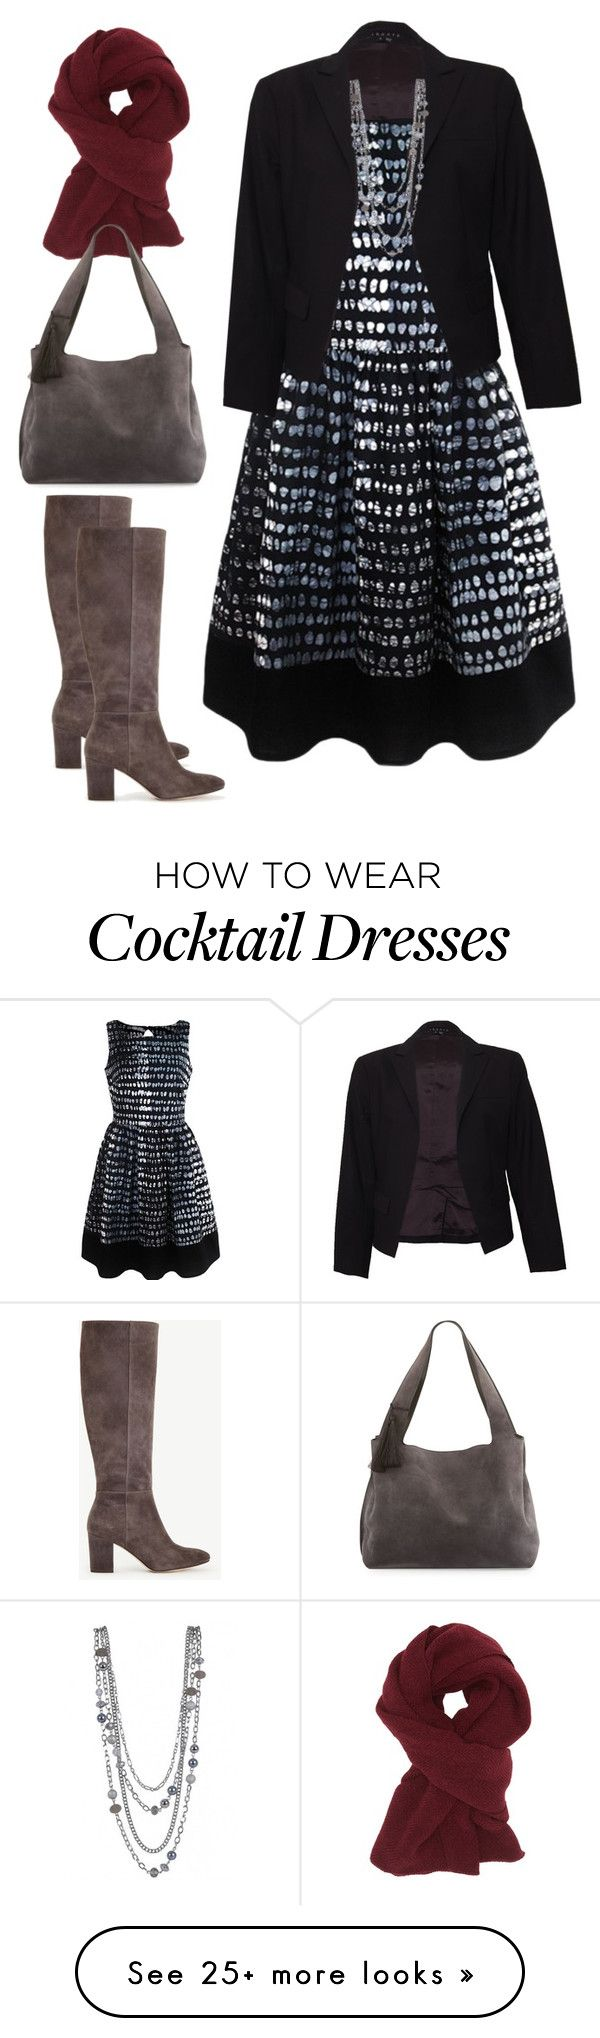 """Sapelle Batik Monochrome Dress - Smart"" by sapellestyle on Polyvore featuring Ann Taylor, Theory, Charlotte Russe, The Row and Ethical"